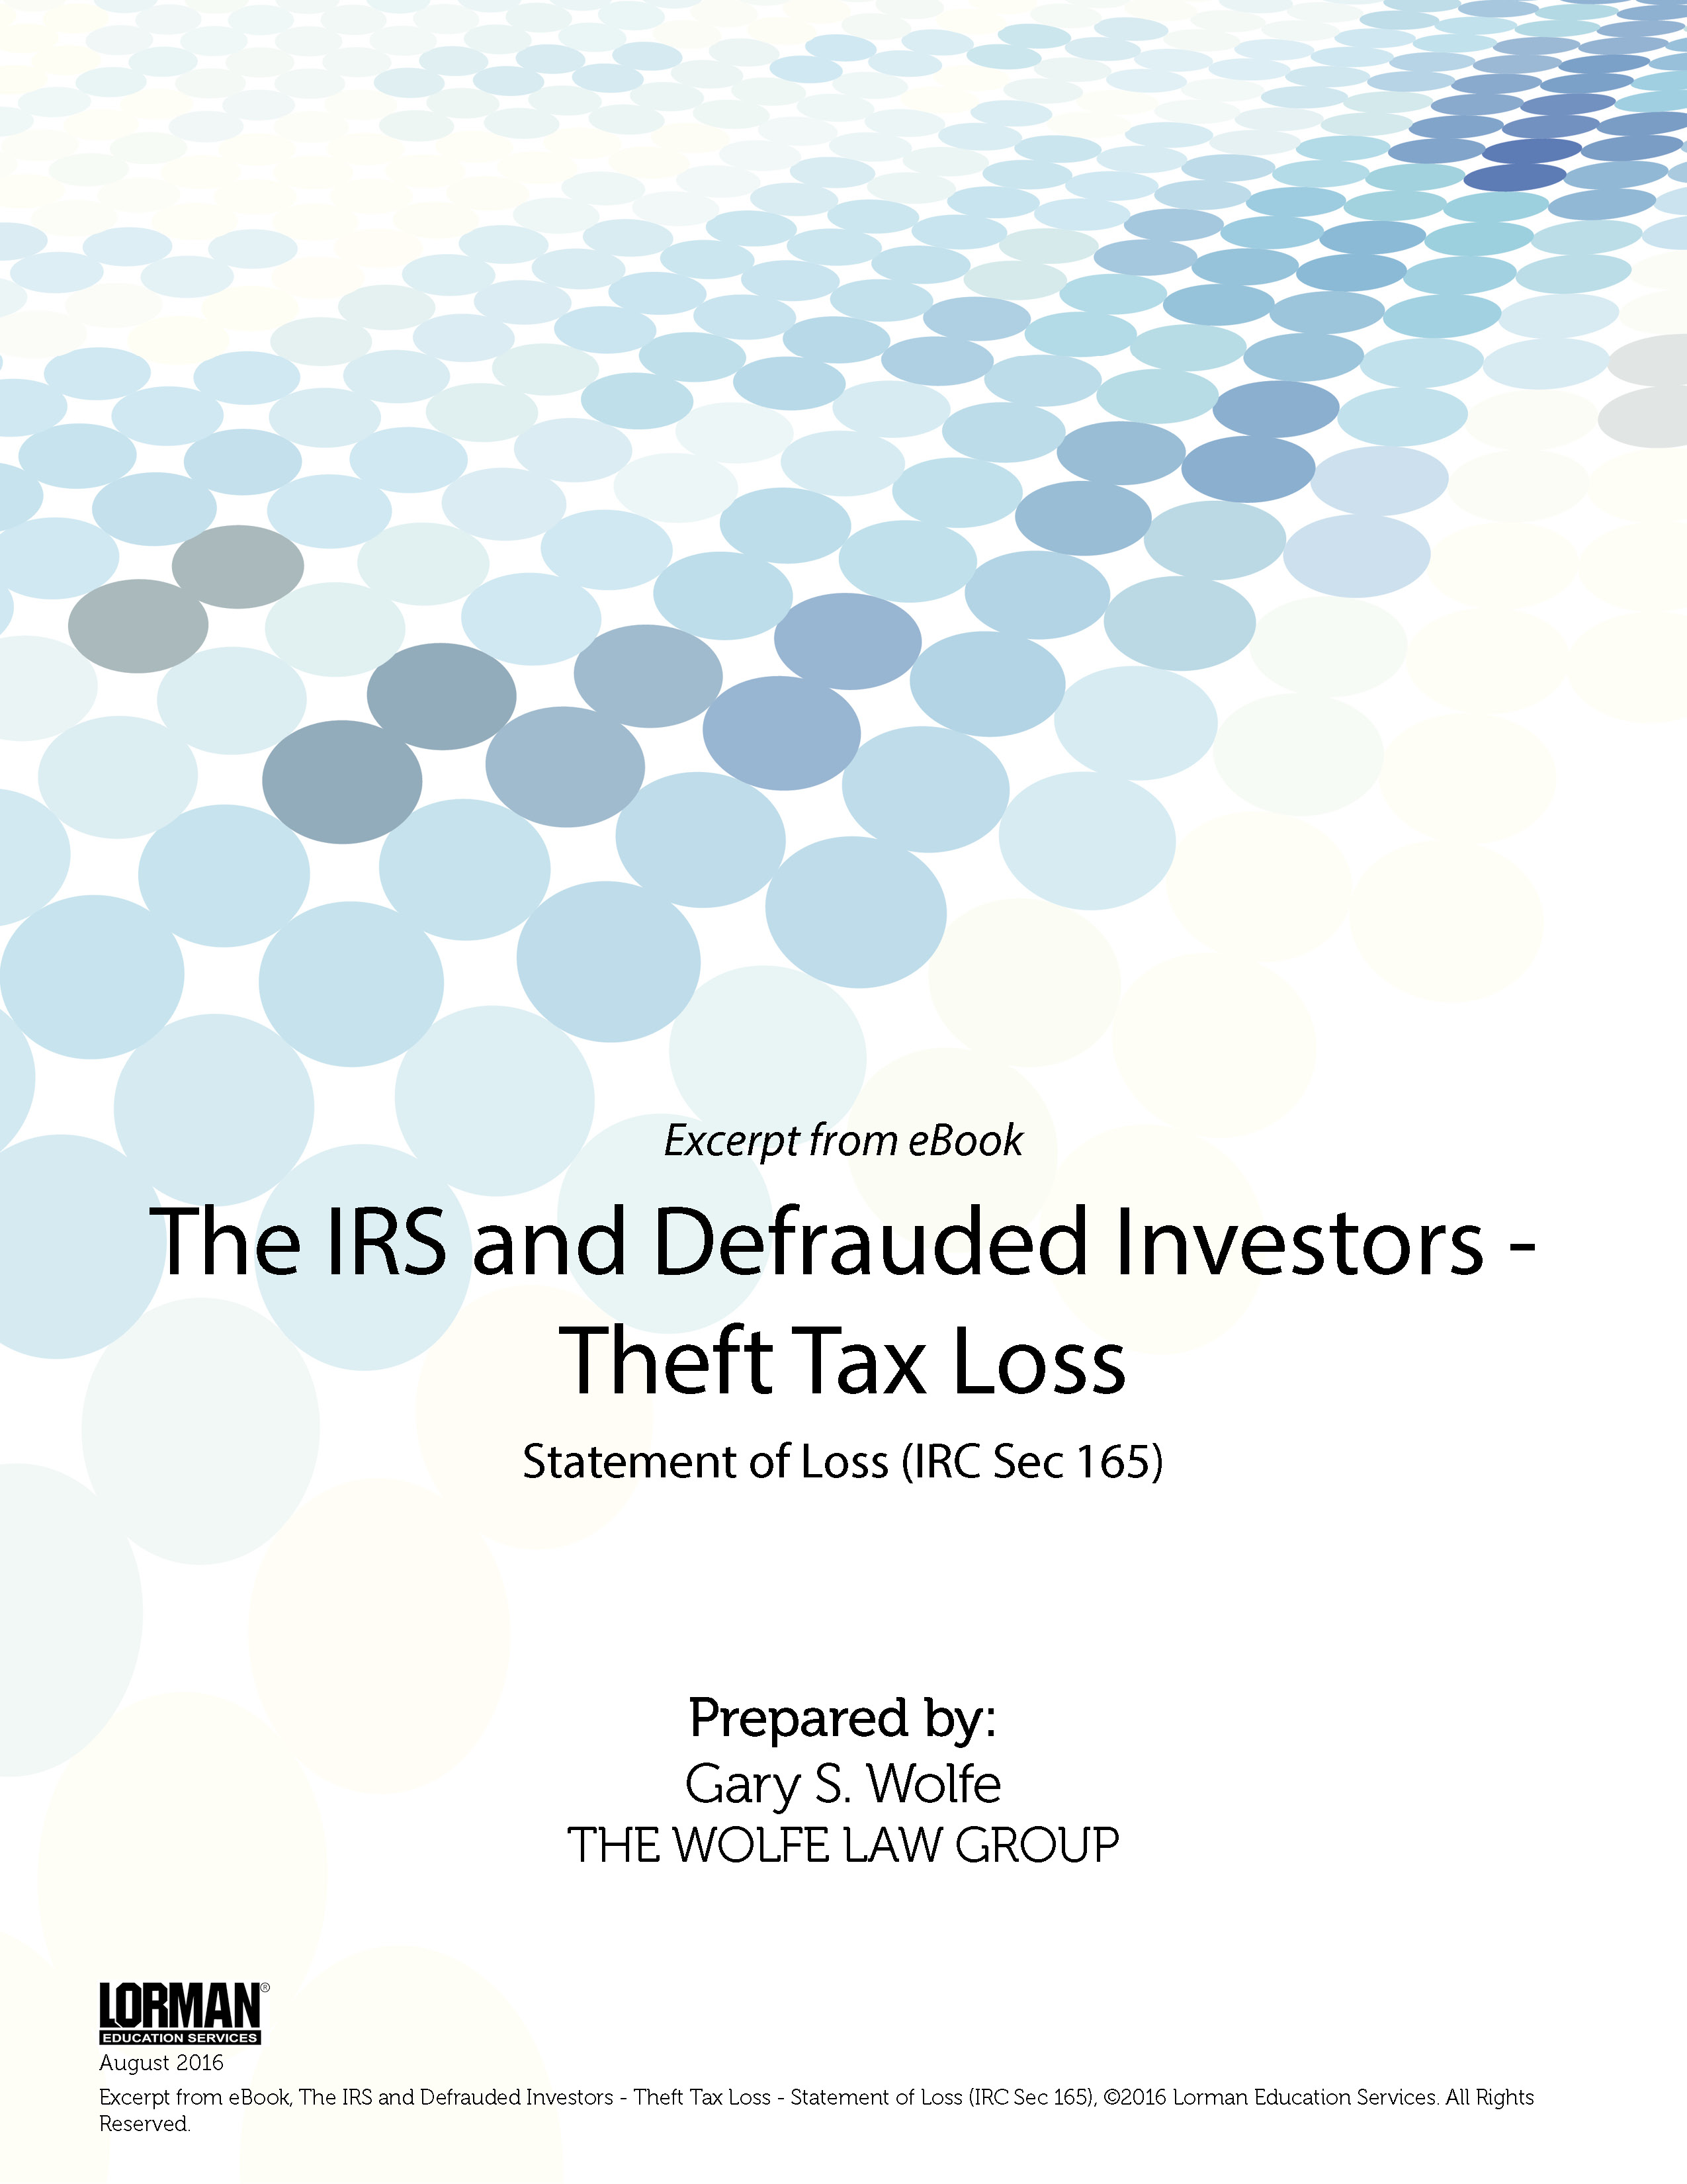 The IRS and Defrauded Investors - Theft Tax Loss: Statement of Loss (IRC Sec 165)